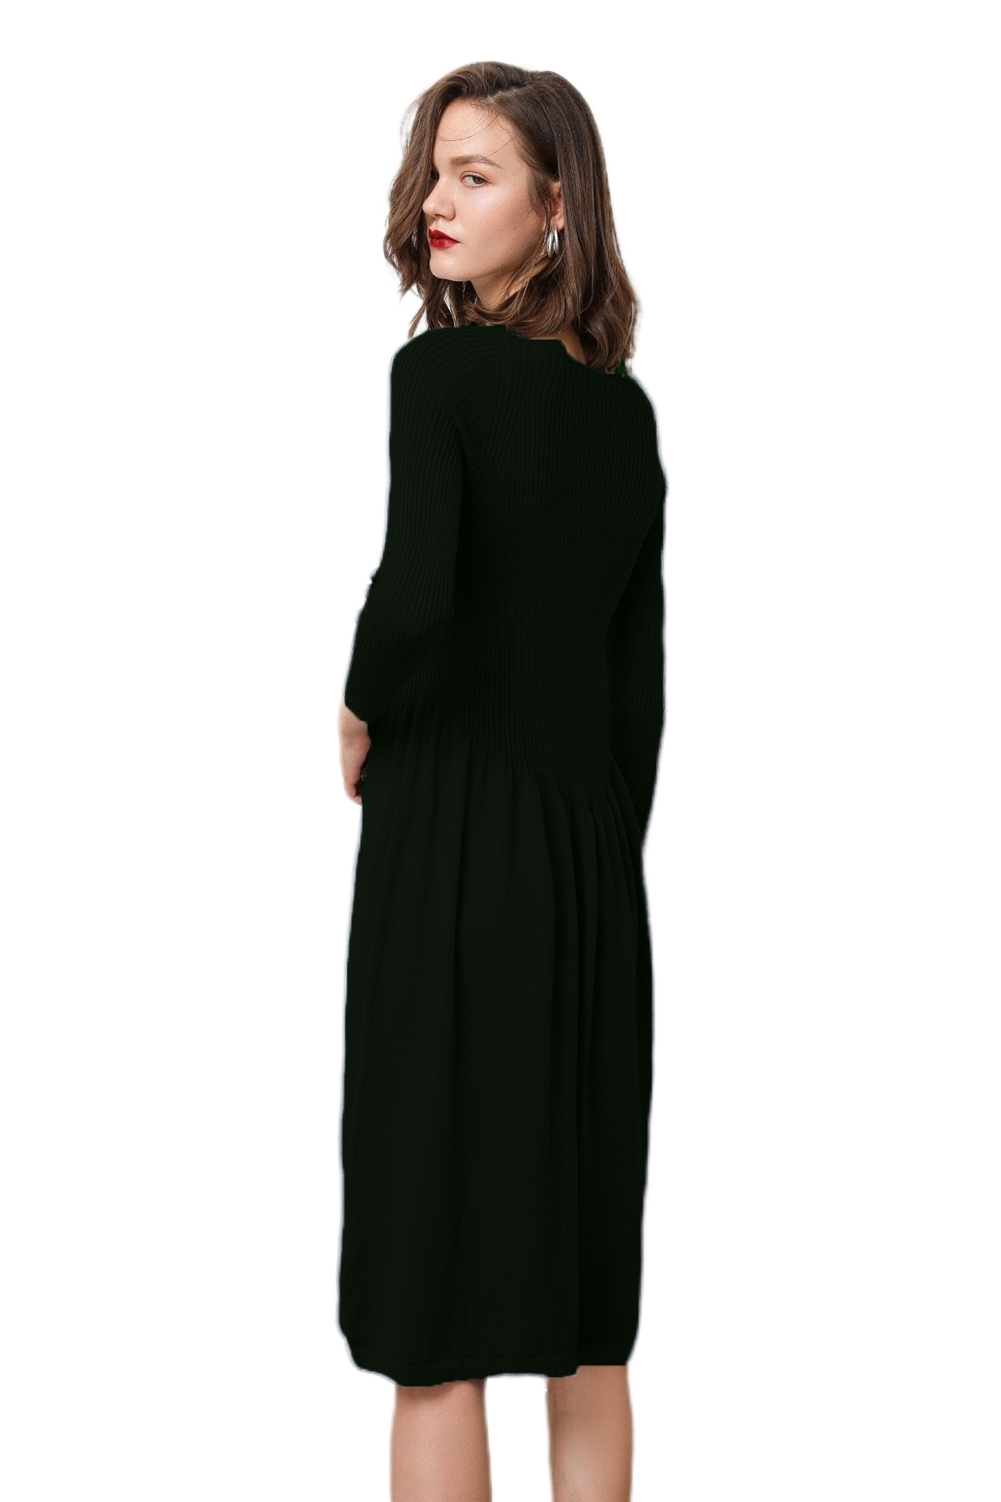 Knit Dress  Women's Cashmere Boat Neck Ribbed Elbow Fall&Winter Dresses image 3